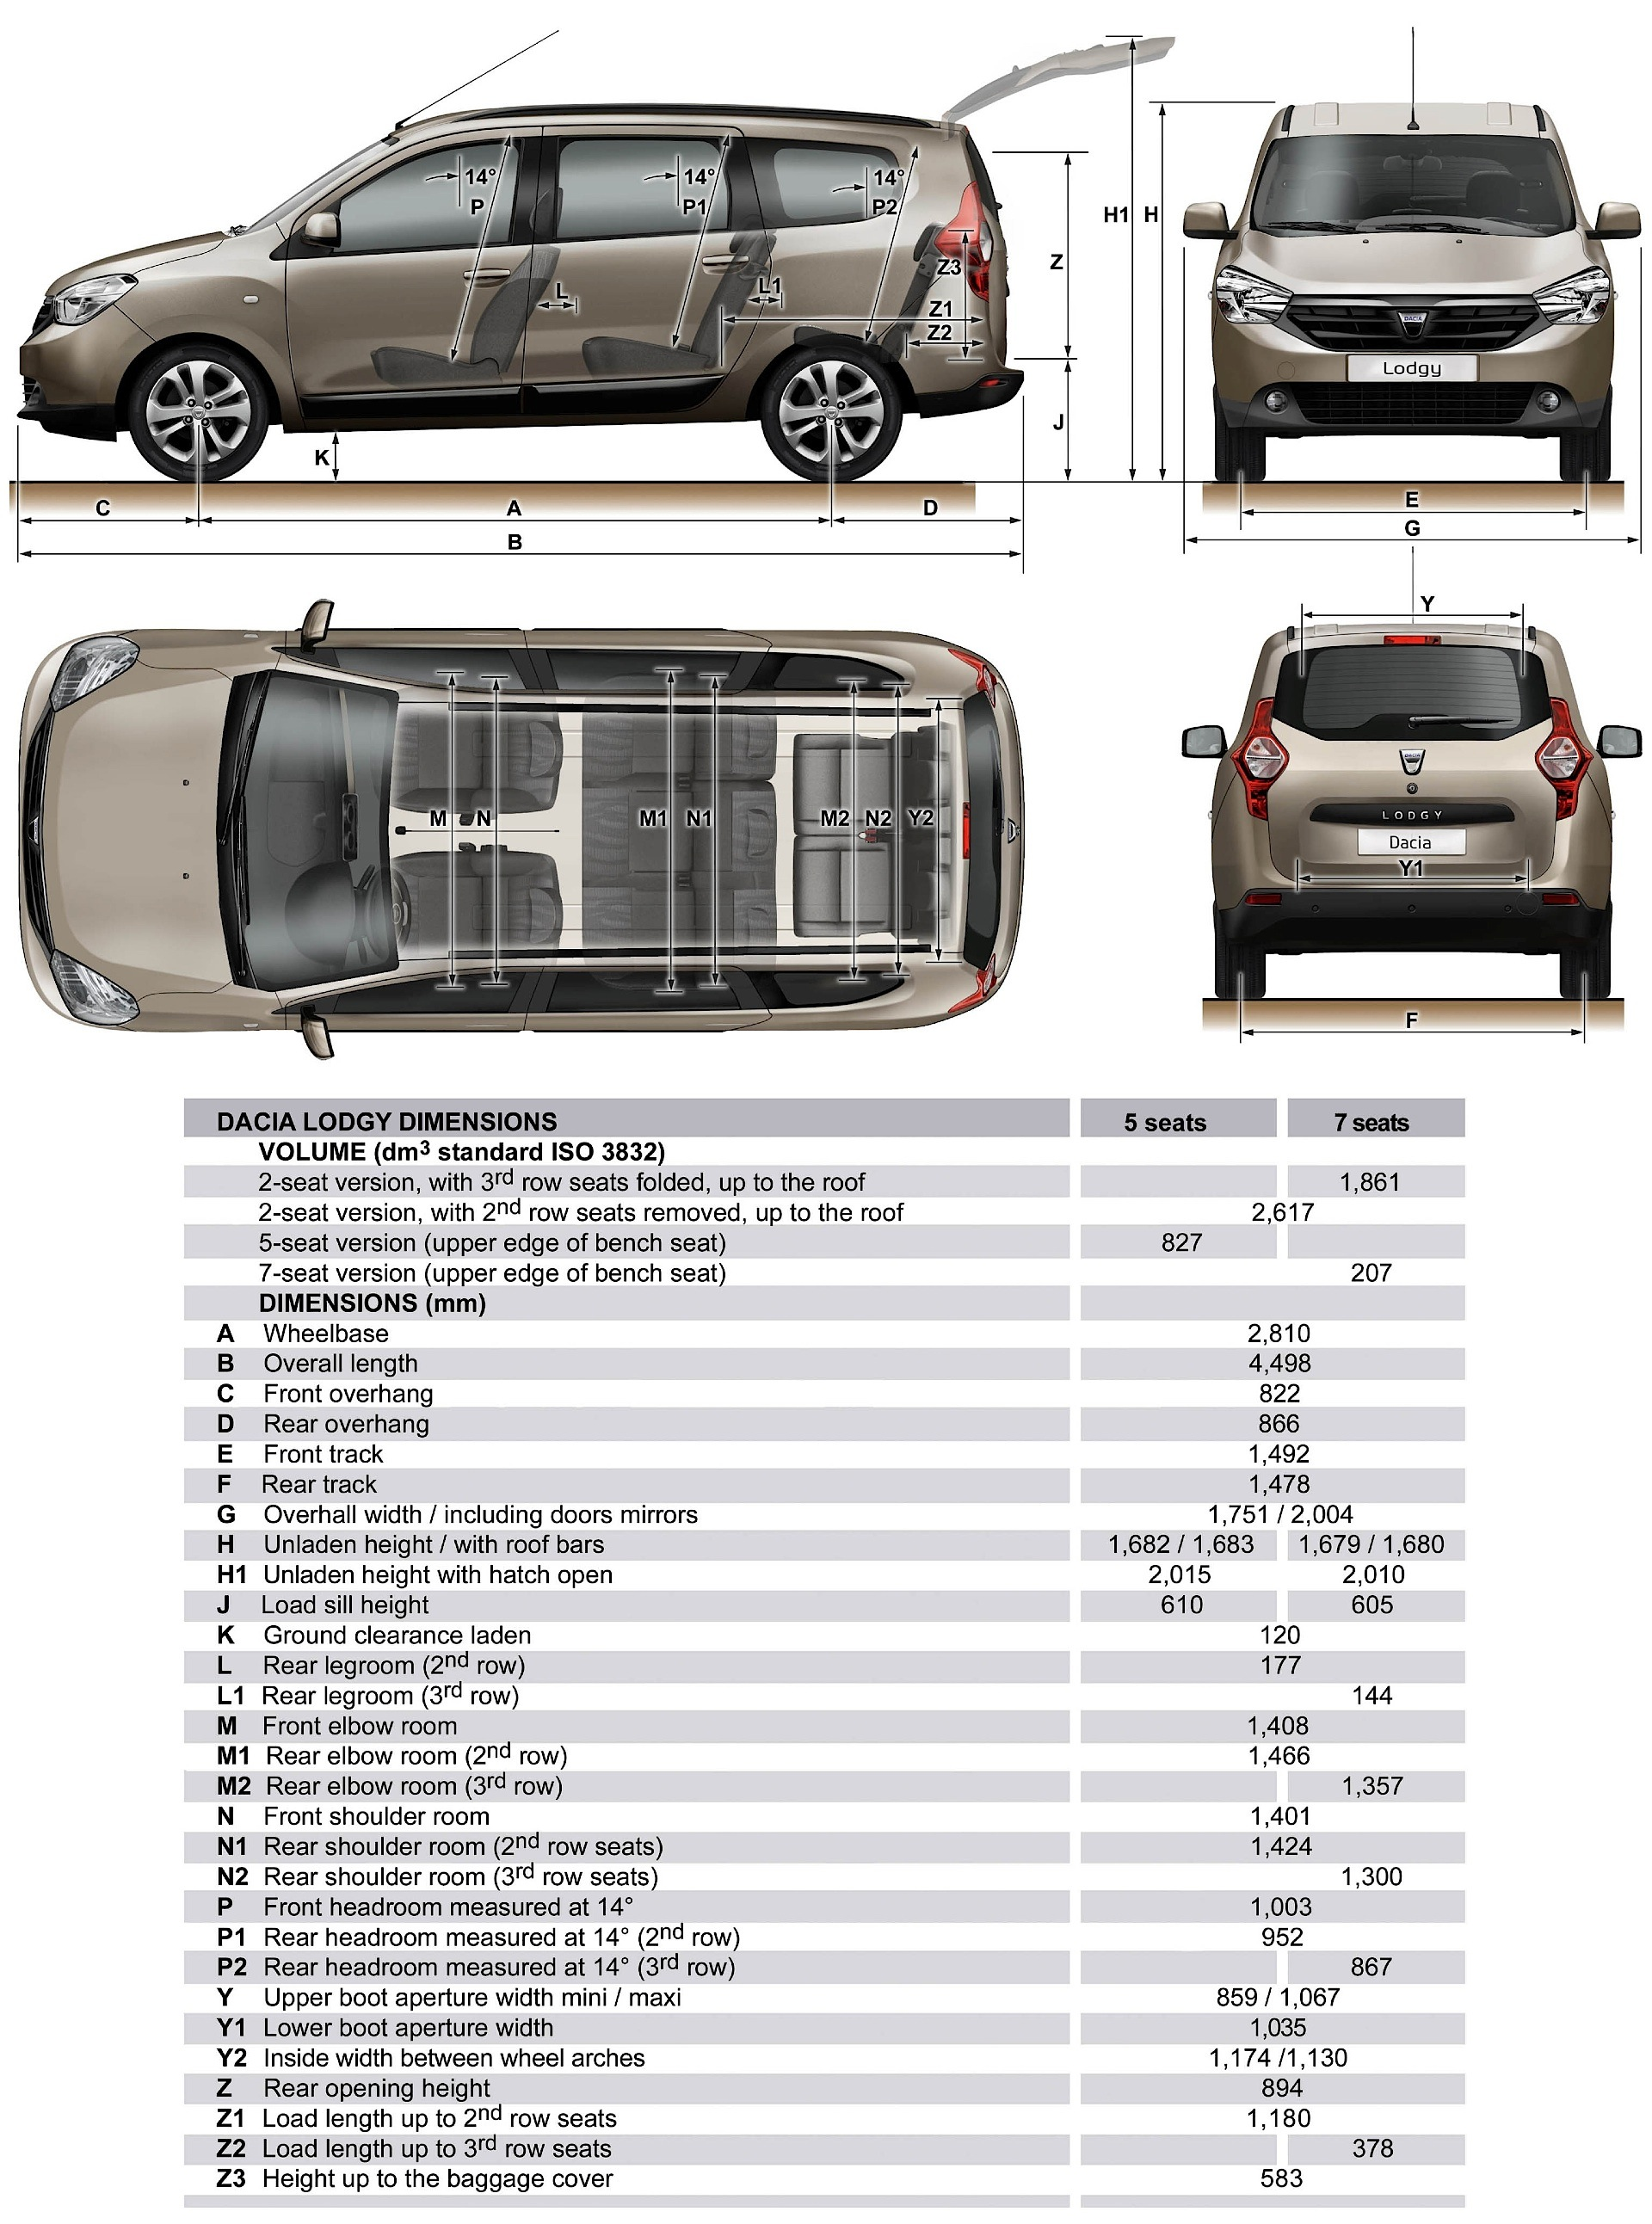 dacia lodgy specs 2012 2013 2014 2015 2016 2017 2018 autoevolution. Black Bedroom Furniture Sets. Home Design Ideas